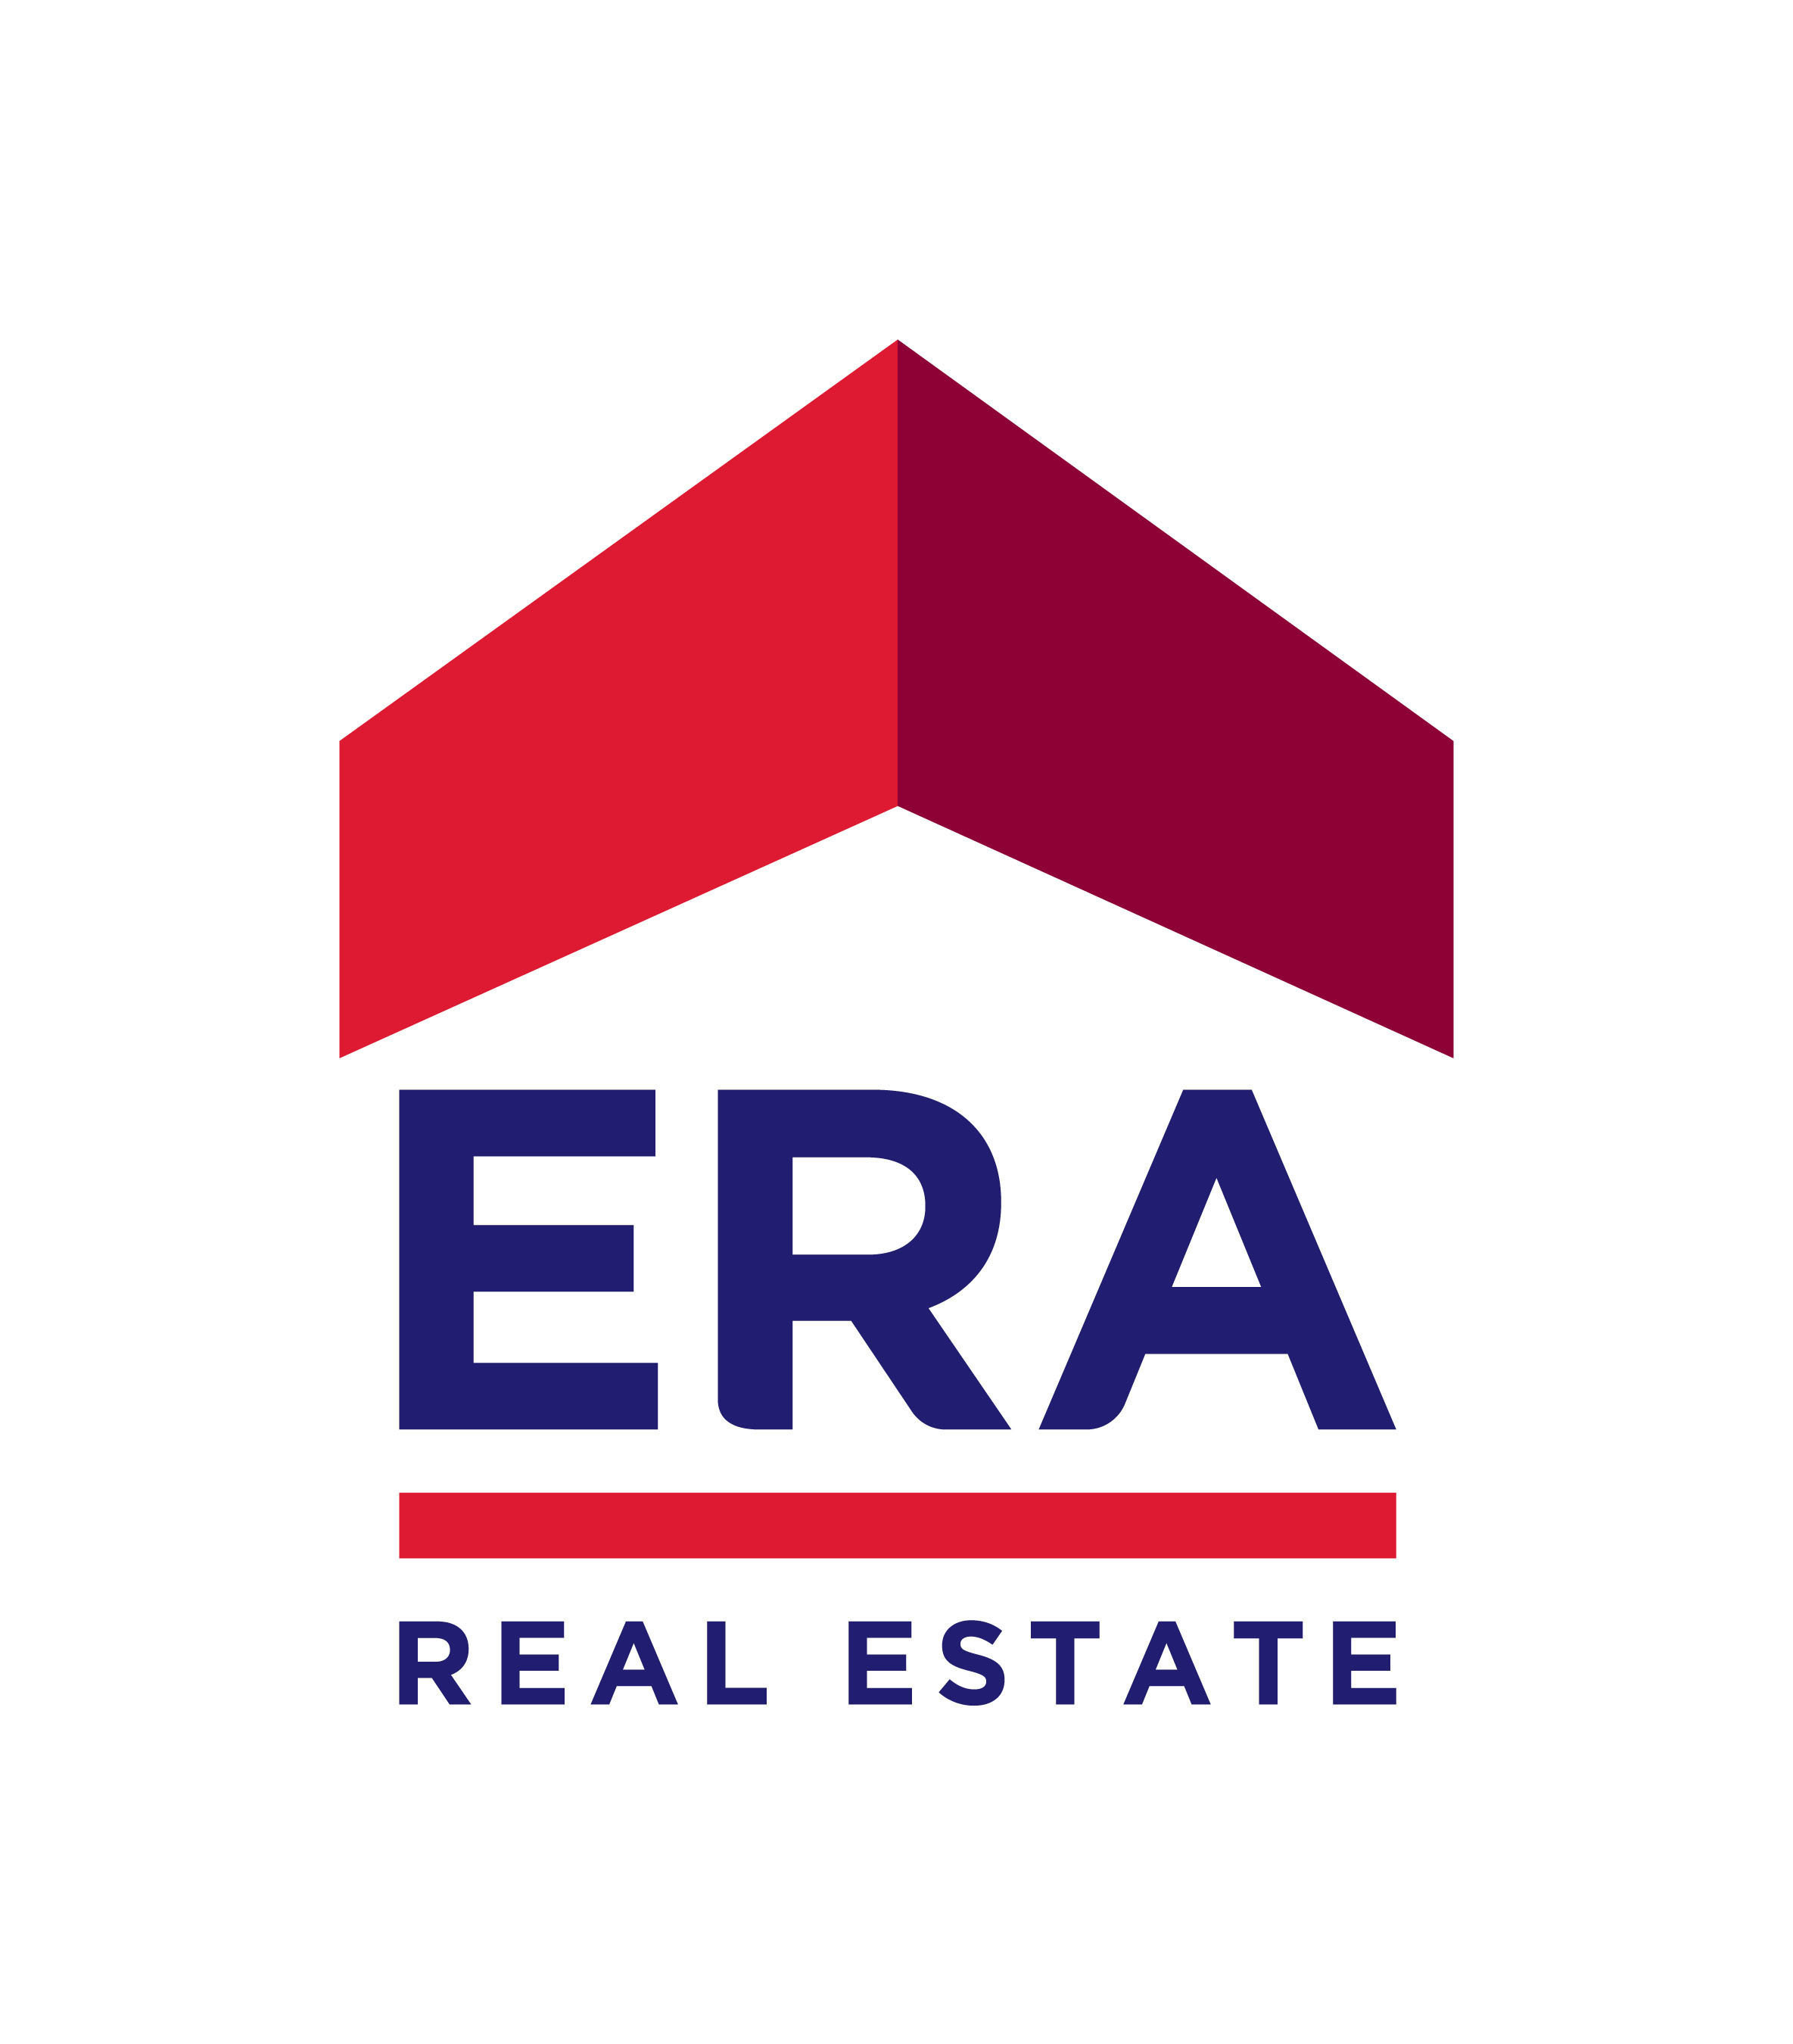 ERA Real Estate.